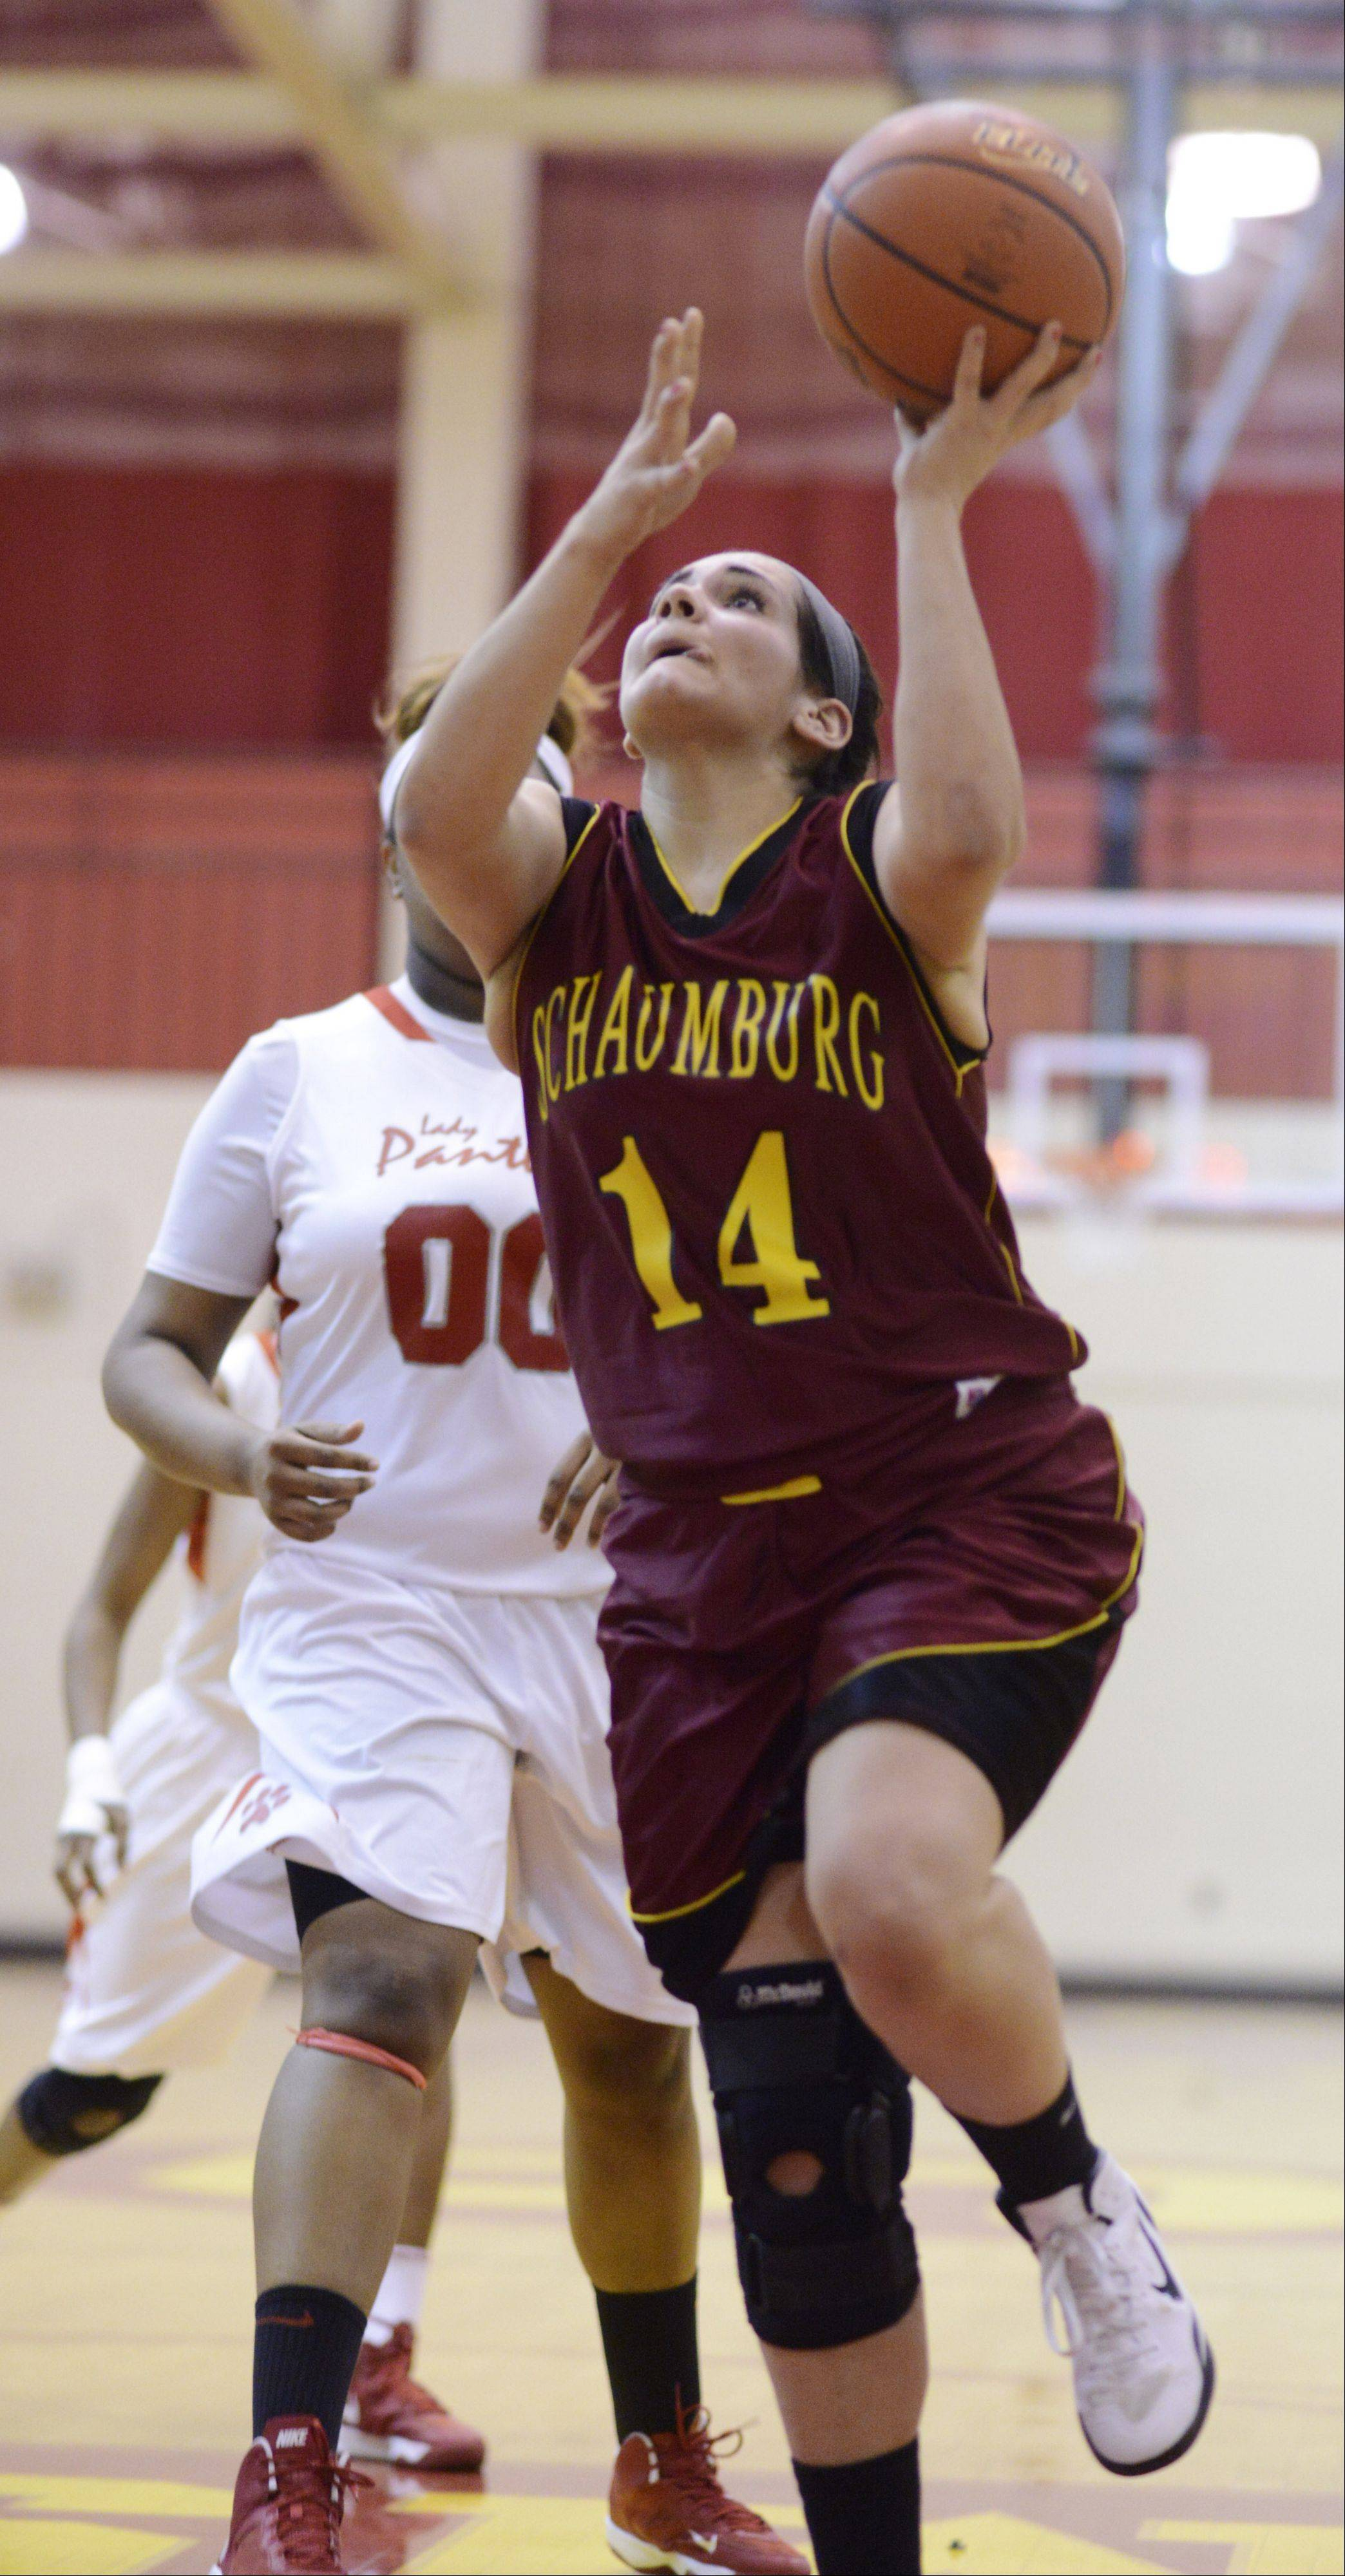 Schaumburg's Carly Brossard drives to the basket during Tuesday's Class 4A regional semifinal against Proviso West.